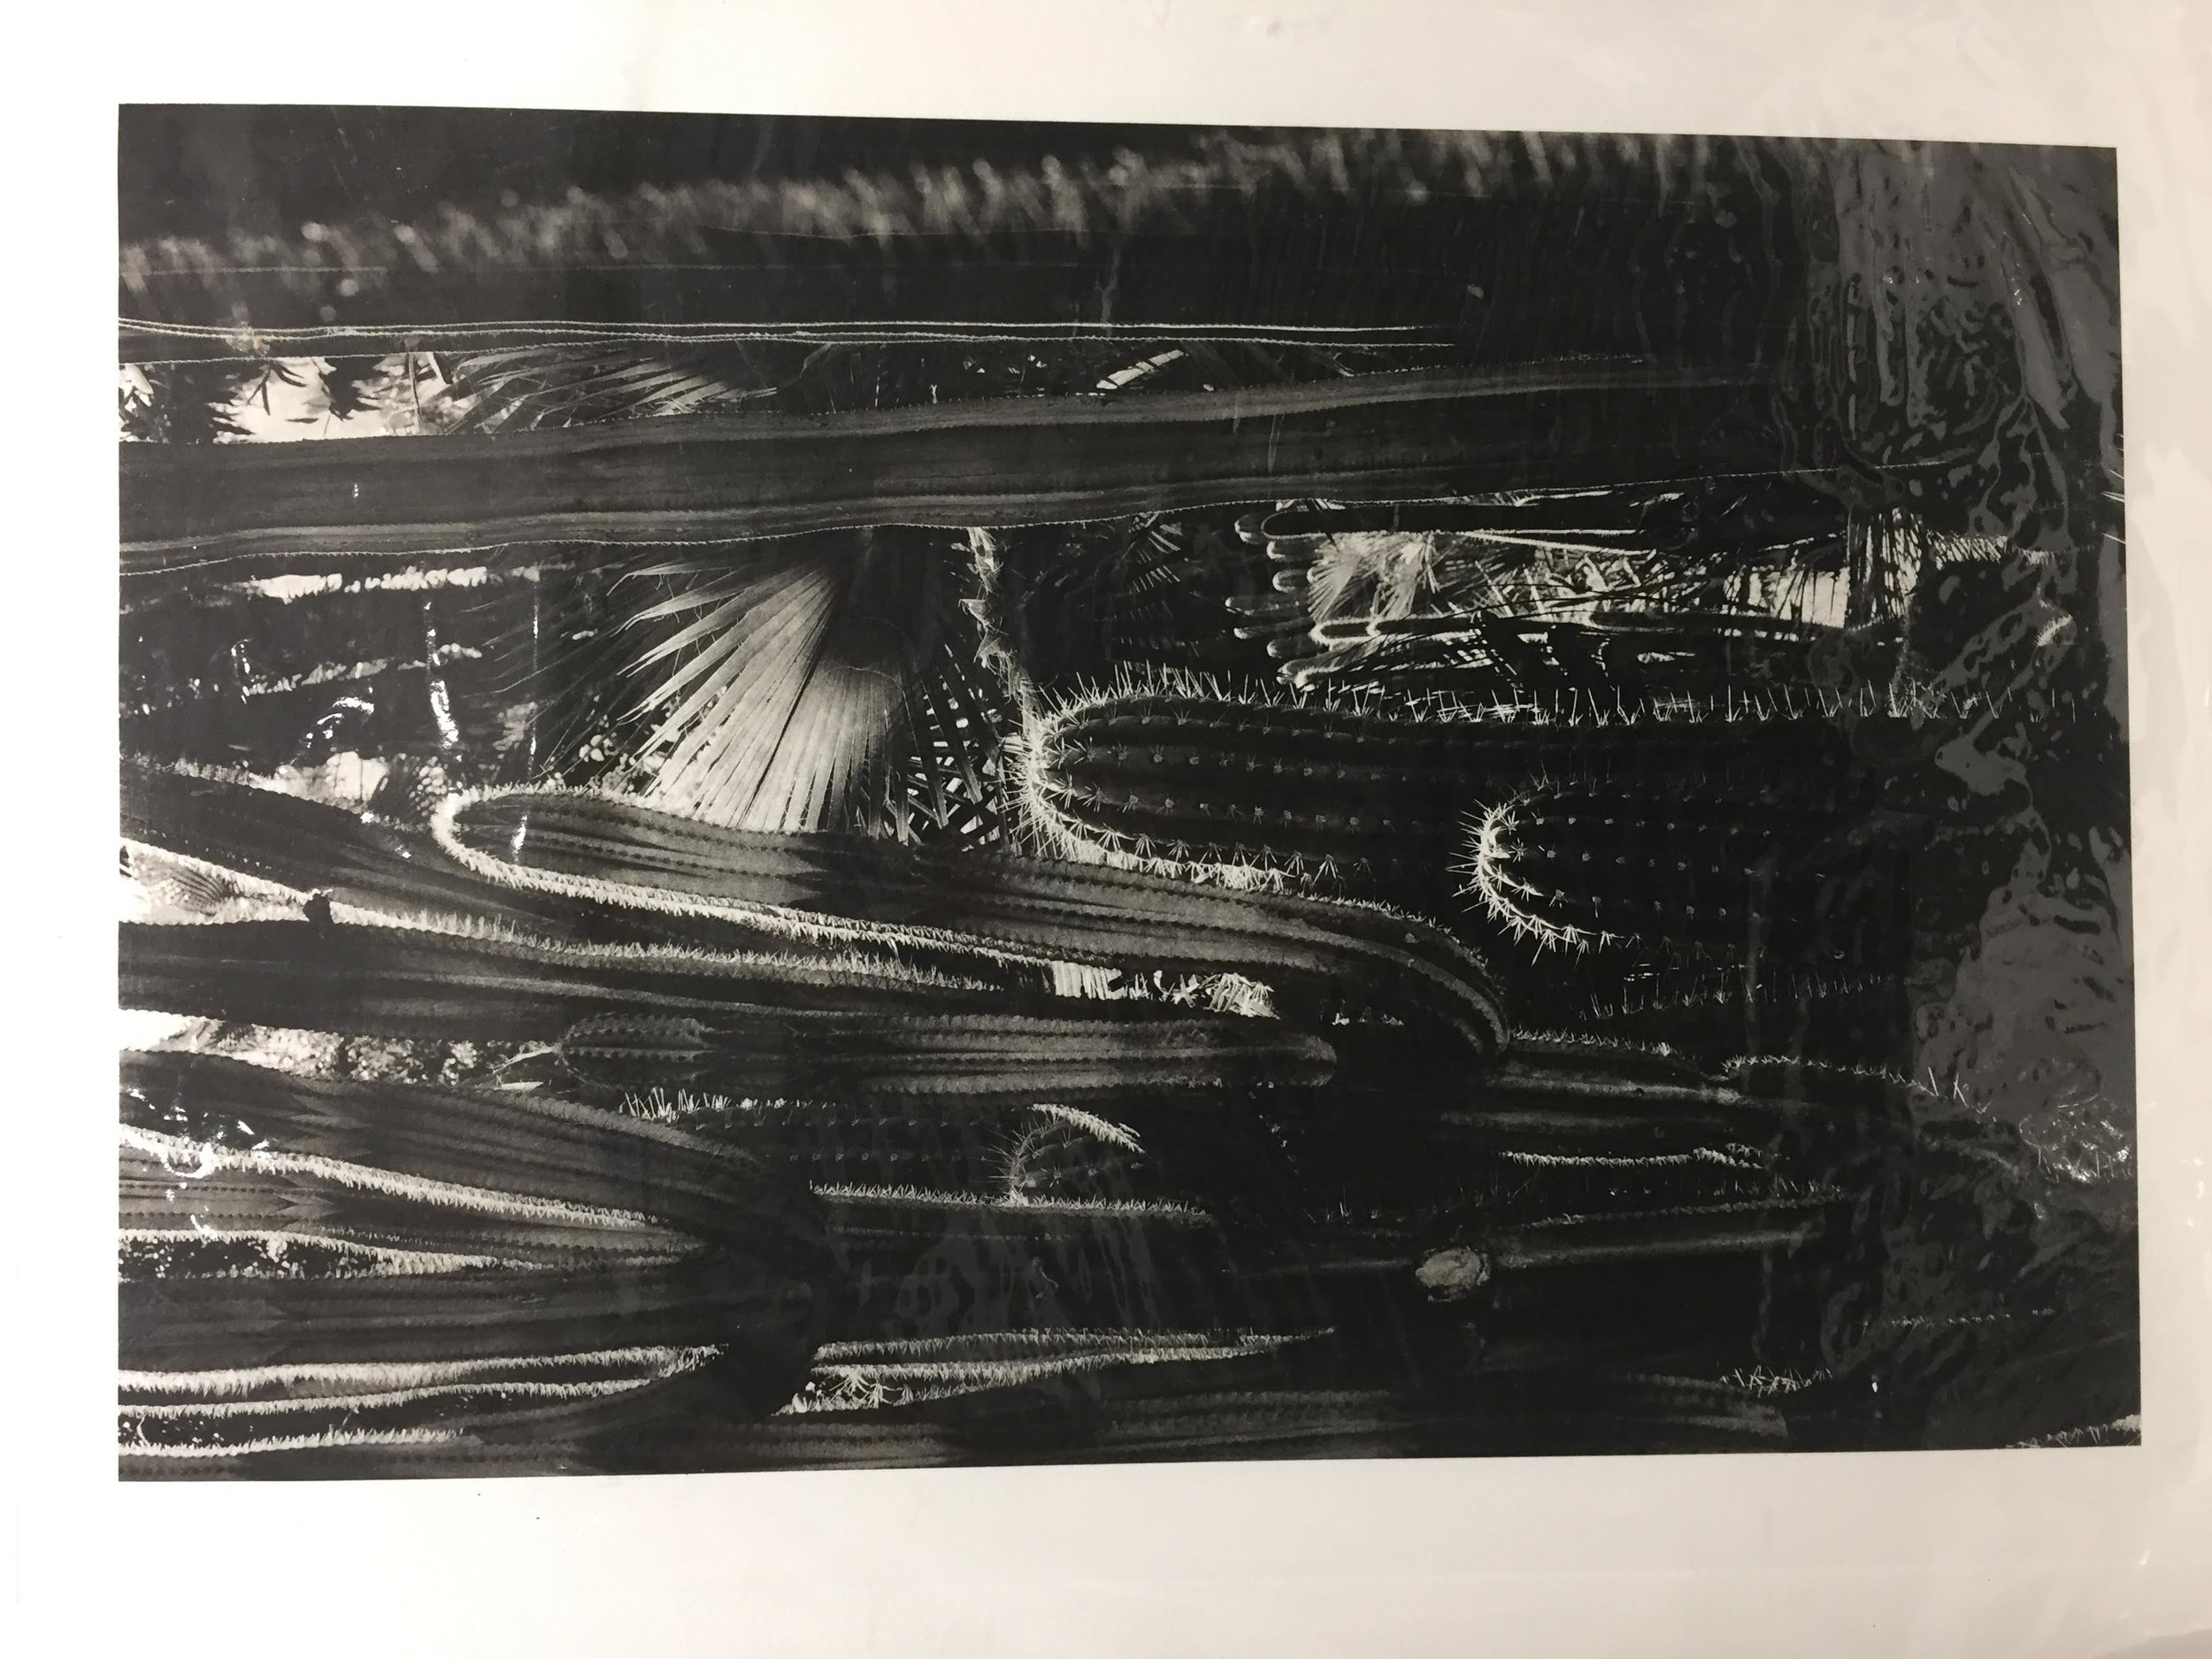 Photogravure proof